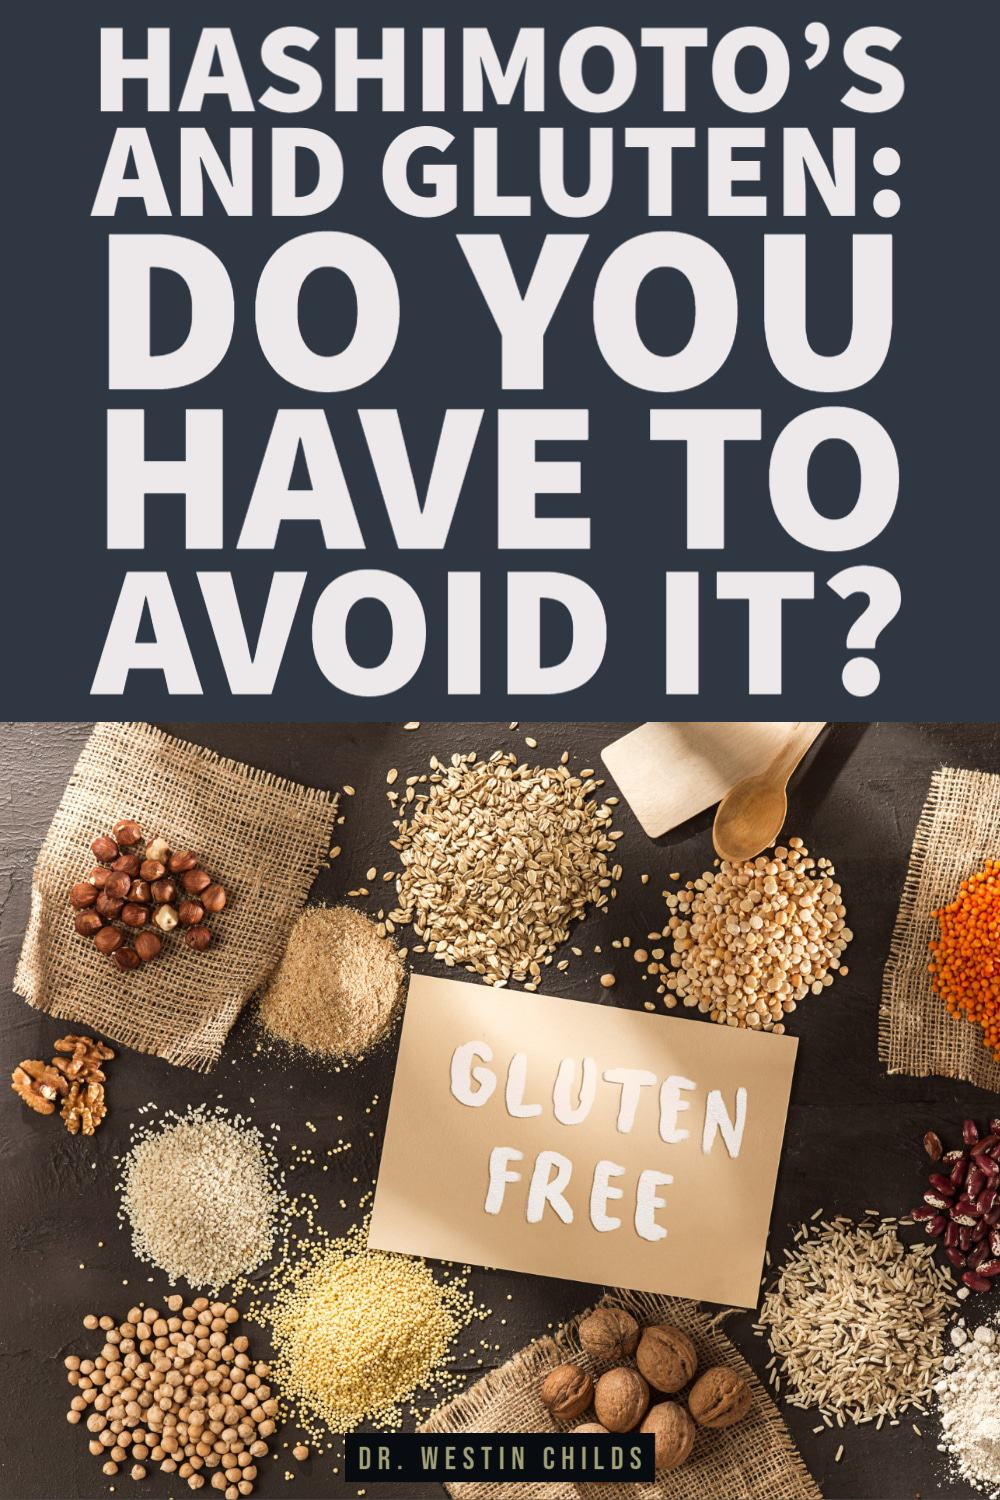 do you have to be gluten free with hashimoto's?